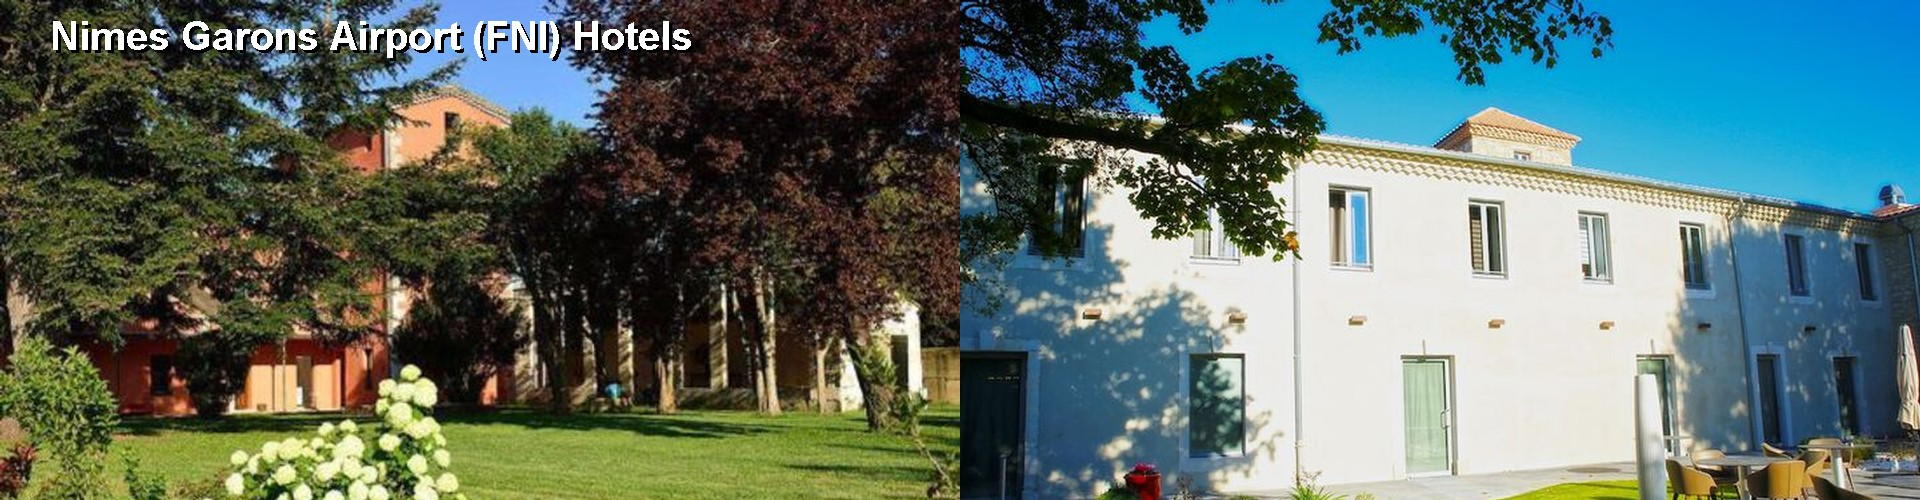 5 Best Hotels near Nimes Garons Airport (FNI)